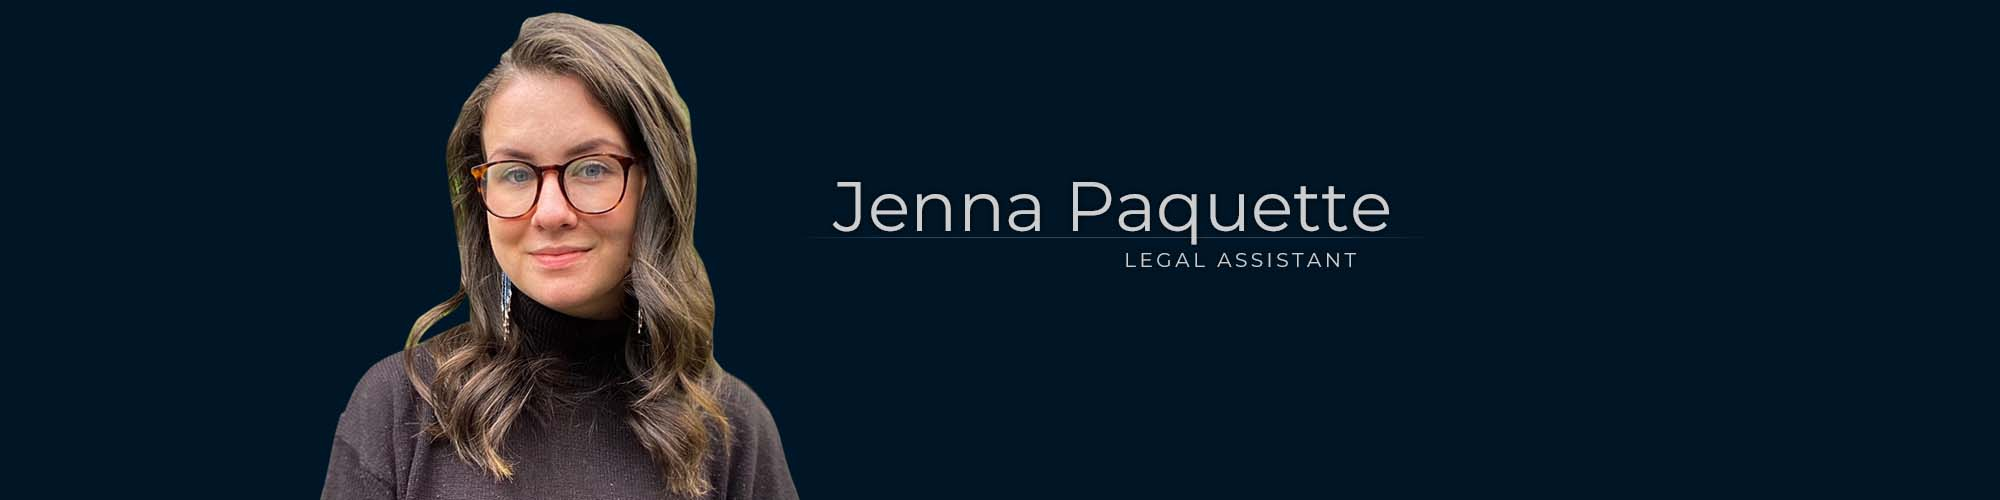 Jenna Paquette, Legal Assistant at Dominion GovLaw LLP